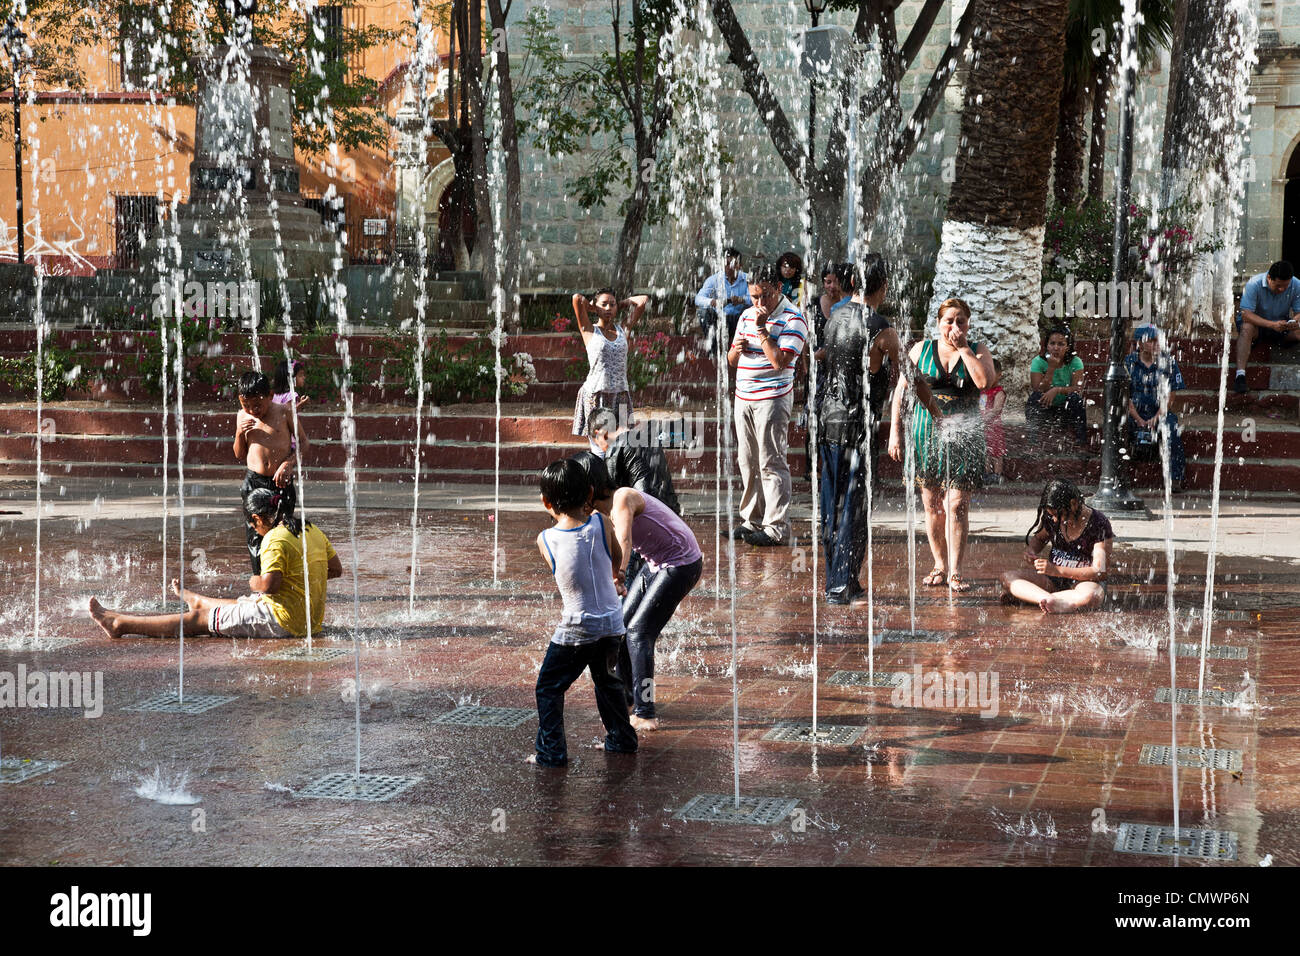 Kids Play In Water Feature Stock Photos Amp Kids Play In Water Feature Stock Images Alamy